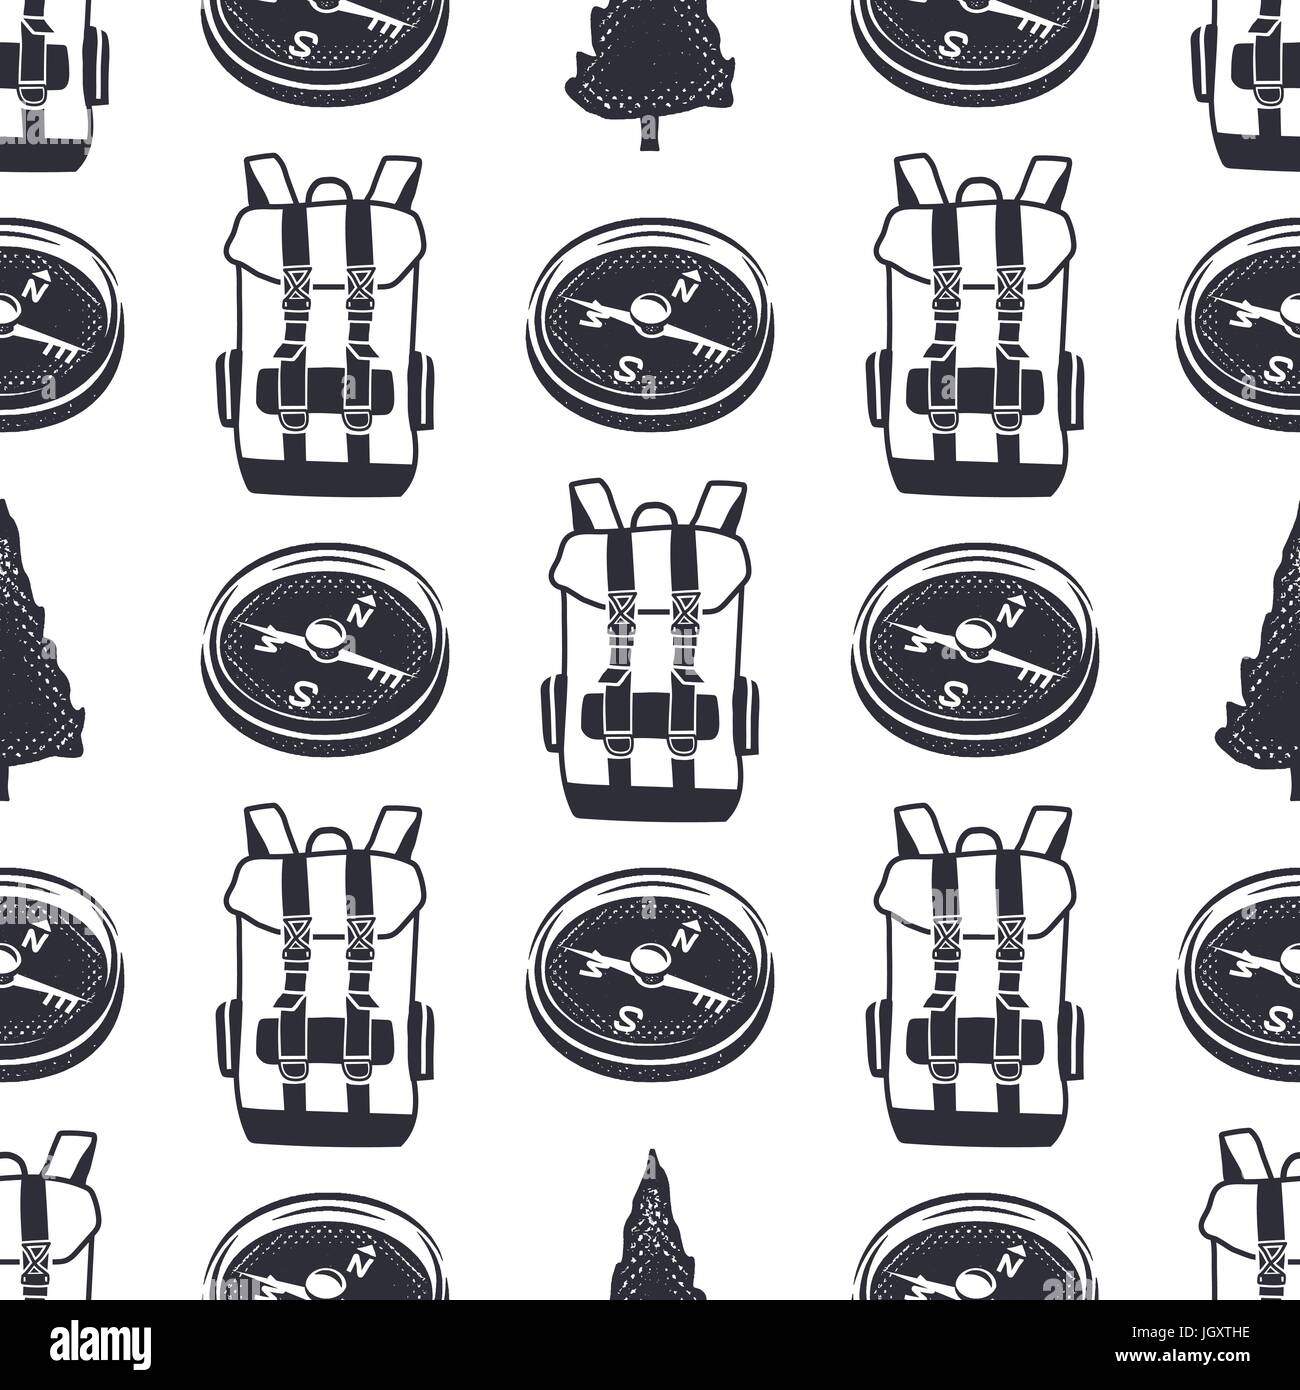 Vintage hand drawn hiking adventure pattern design. Camping seamless wallpaper with backpack, compass. Monochrome - Stock Vector